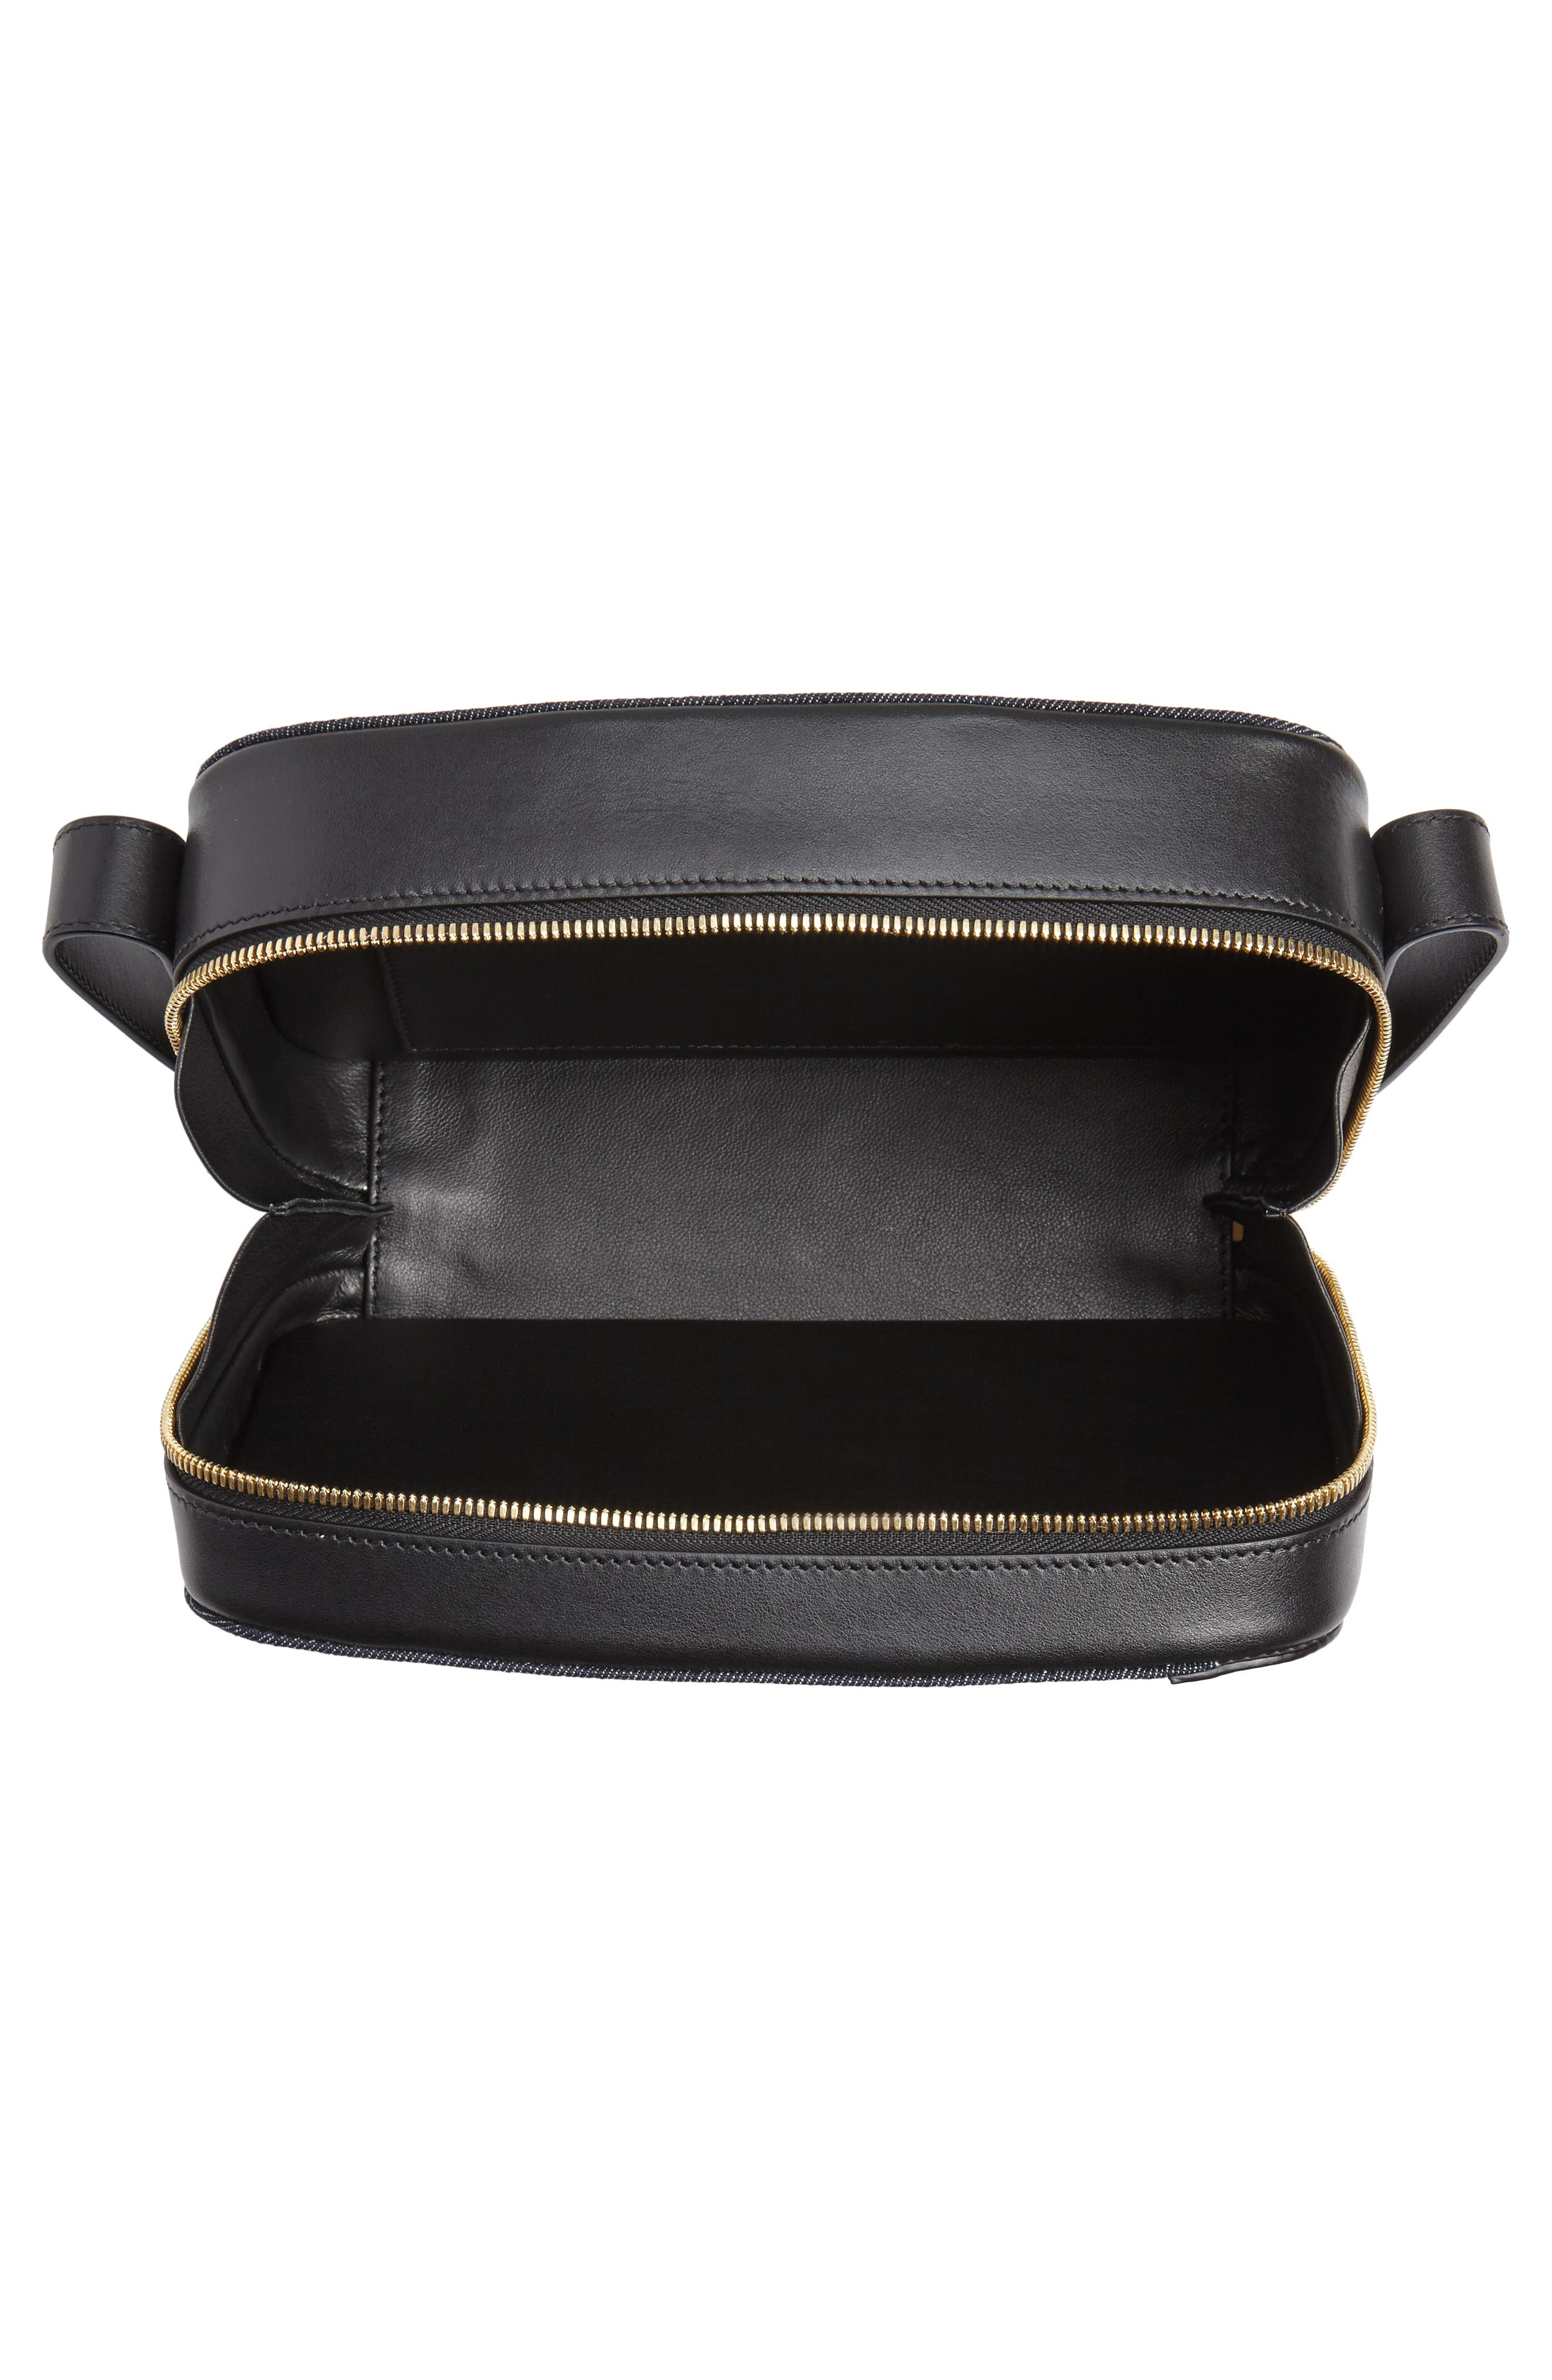 VICTORIA BECKHAM, Vanity Denim & Leather Camera Bag, Alternate thumbnail 4, color, INDIGO/ BLACK